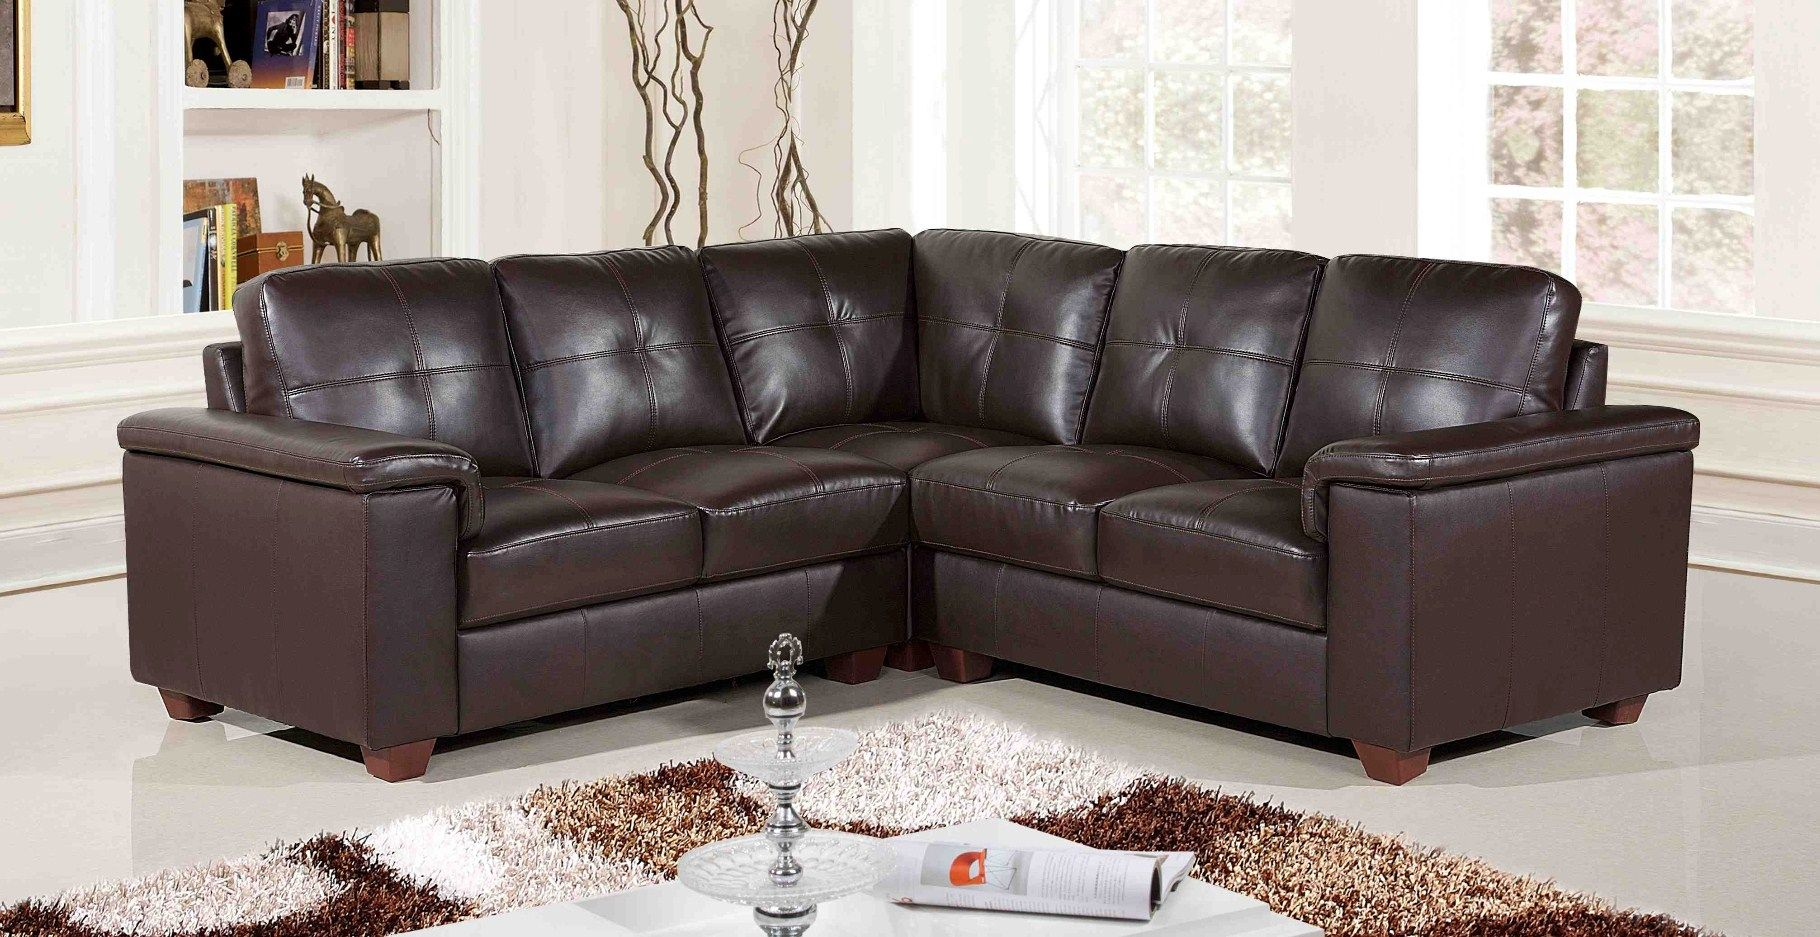 Furniture Classic Leather Sectional Sofas Affordable Prices With Brown Color Designer Living Room Furniture Leather Corner Sofa Sofa Decor Comfortable Sofa